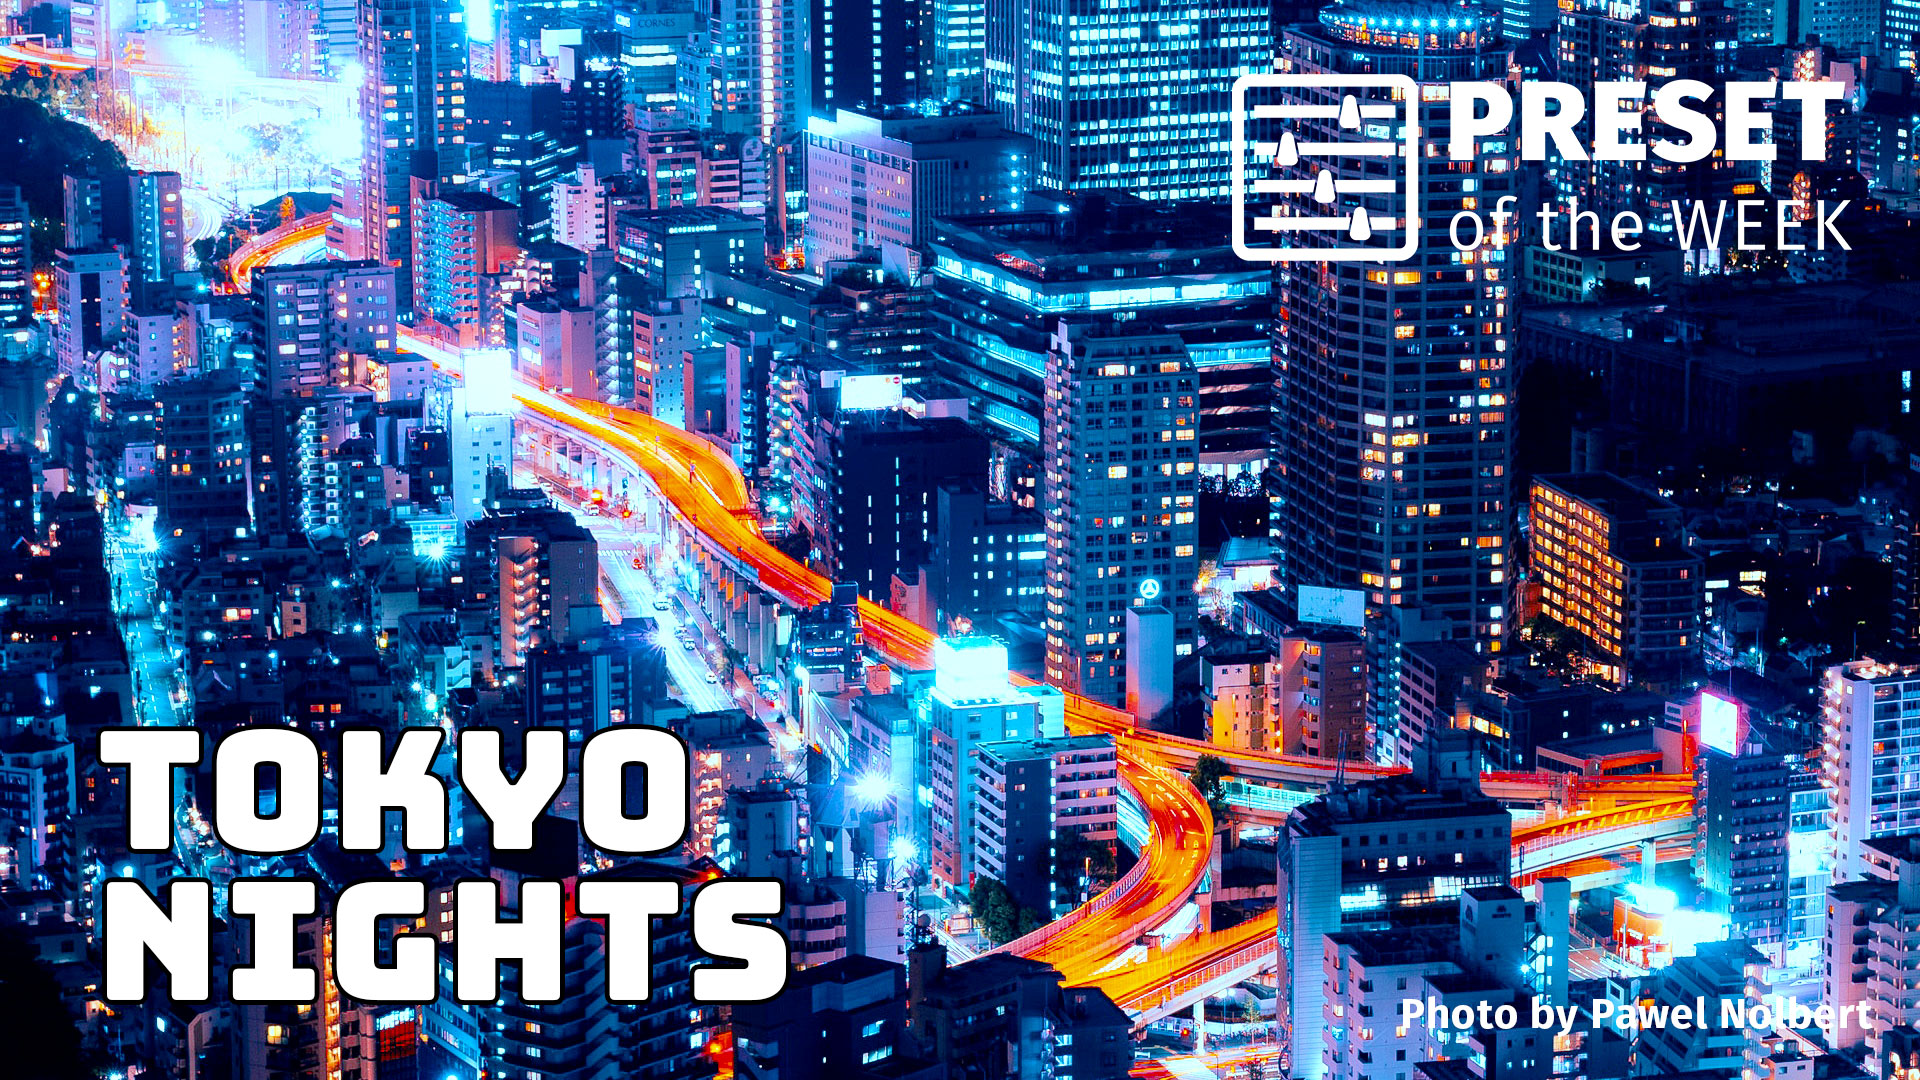 Free Preset of the Week – Tokyo Nights